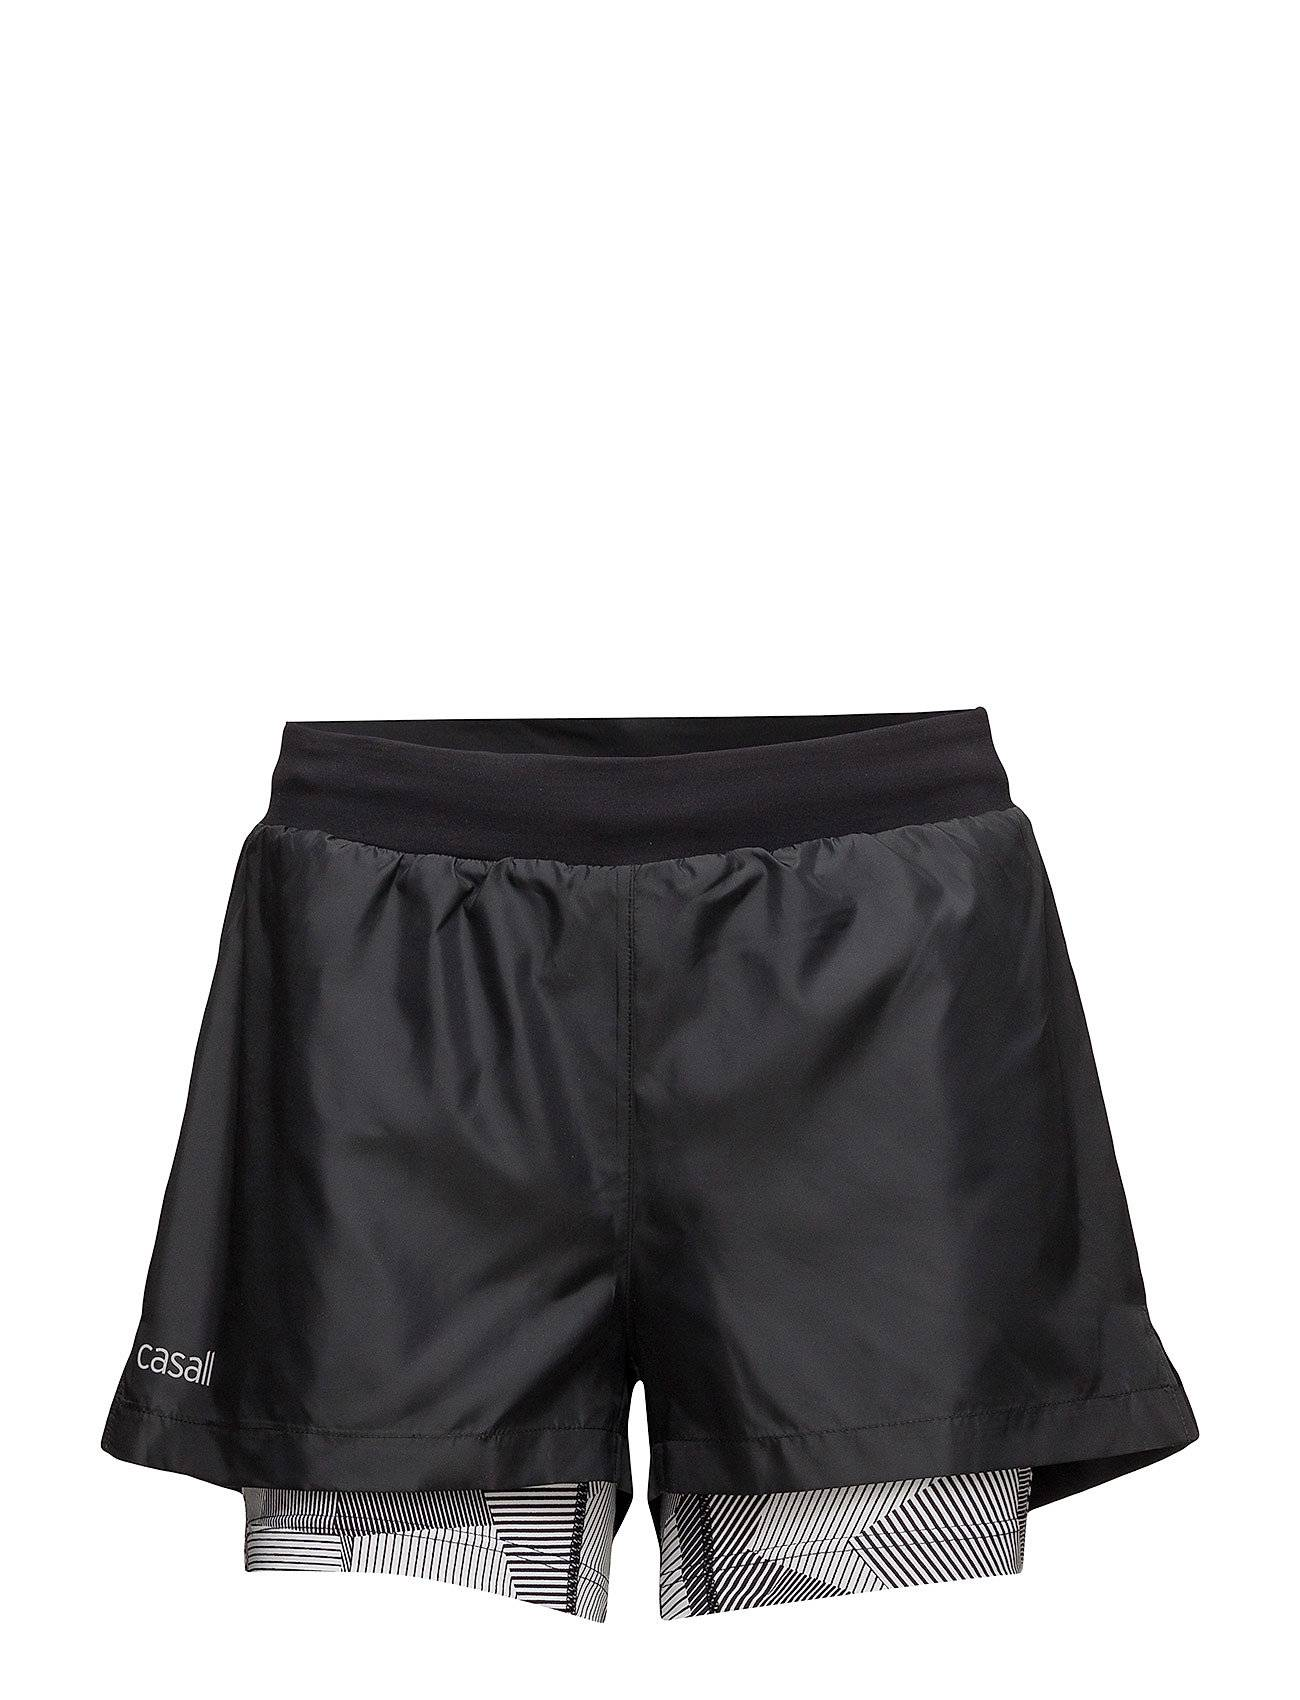 Casall Double Up Shorts